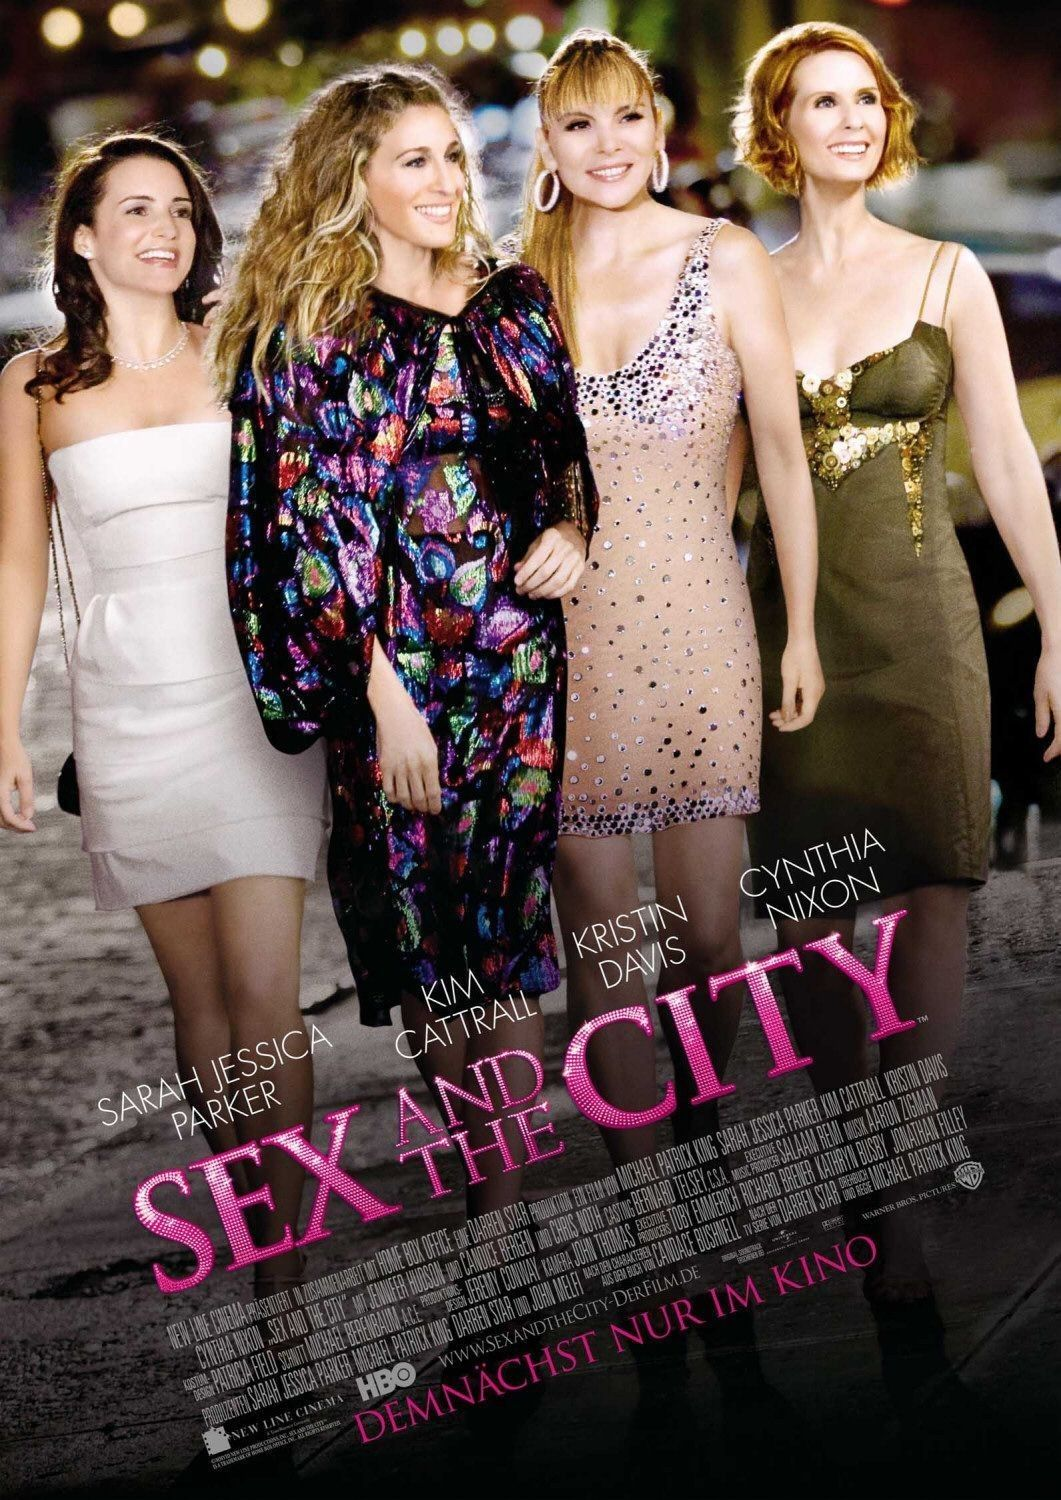 Sex and the city episodes online for free